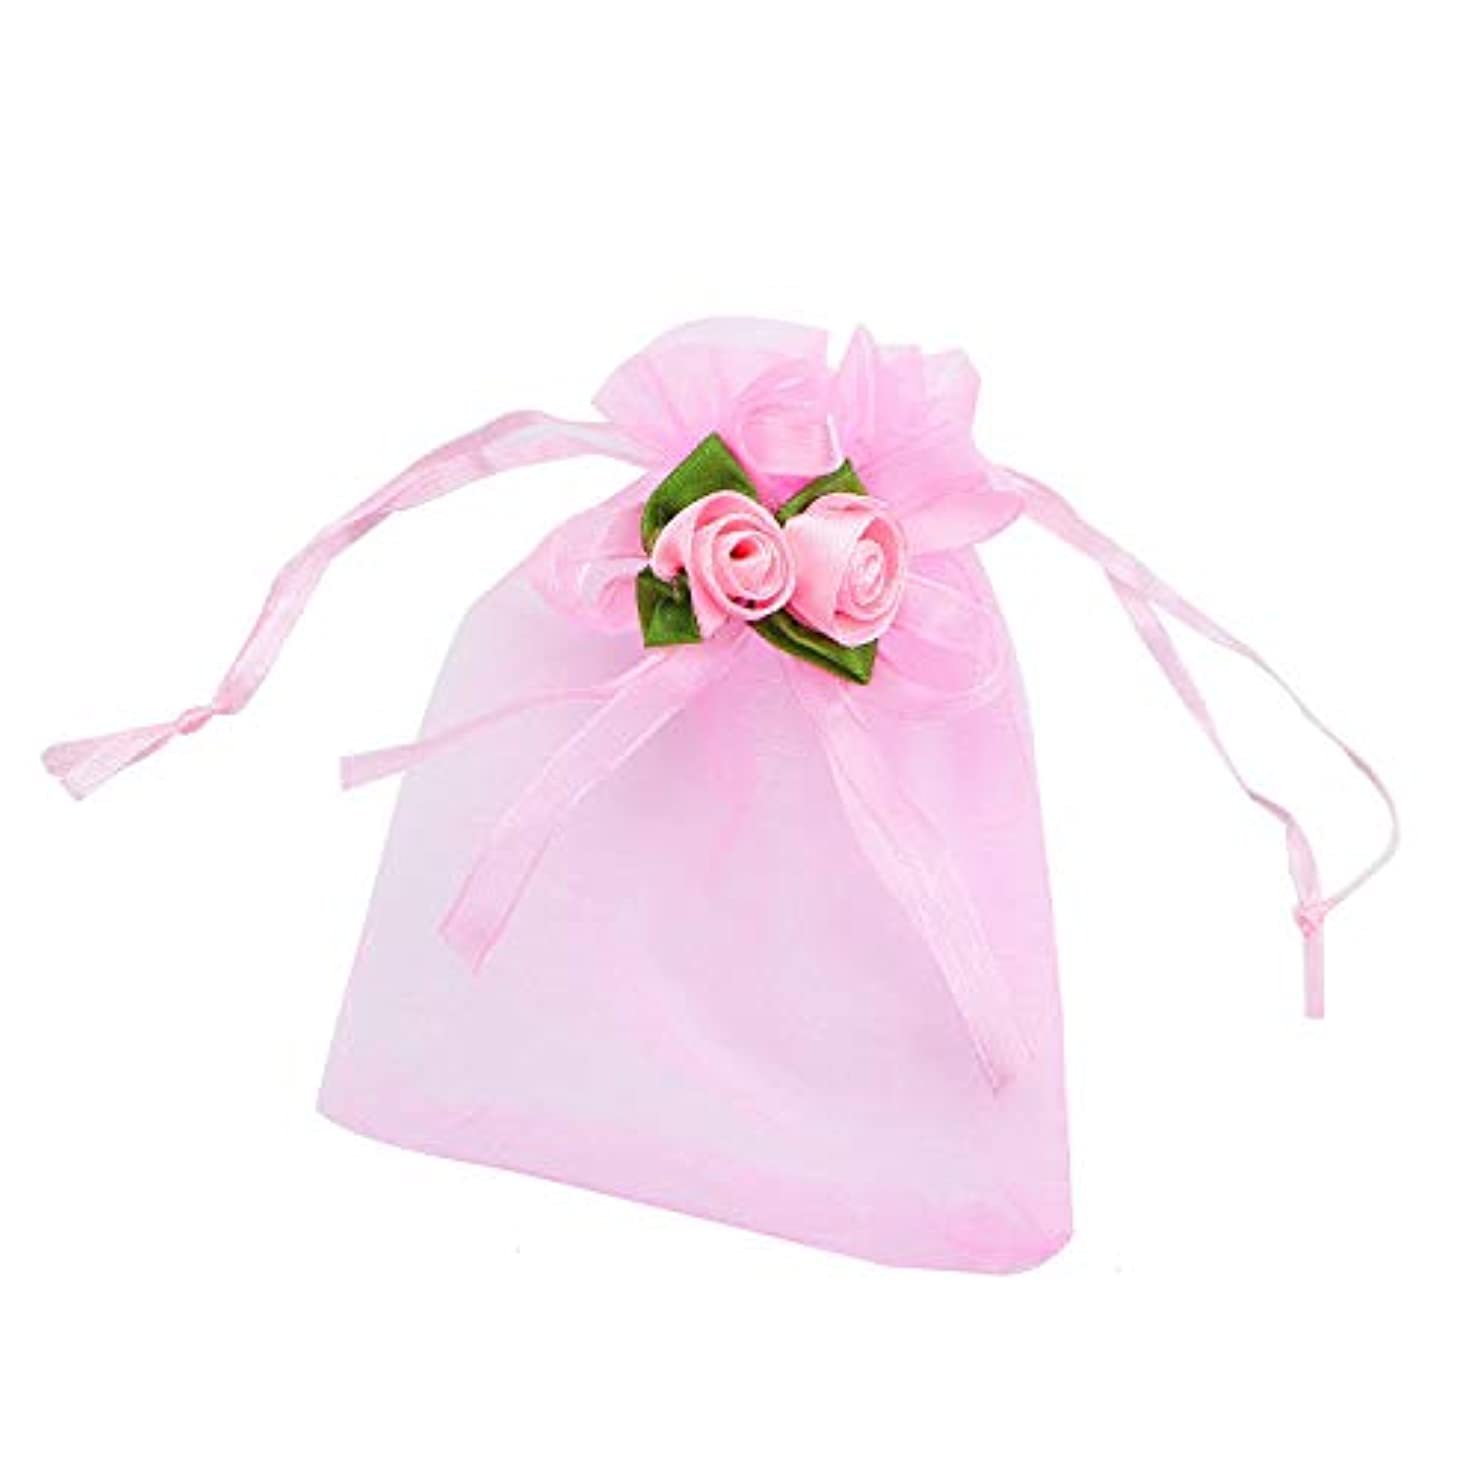 Monrocco 30 Pcs Pink Organza Drawstring Bags Rose Flower Candy Gift Bags Pouches Wedding Favor Bags